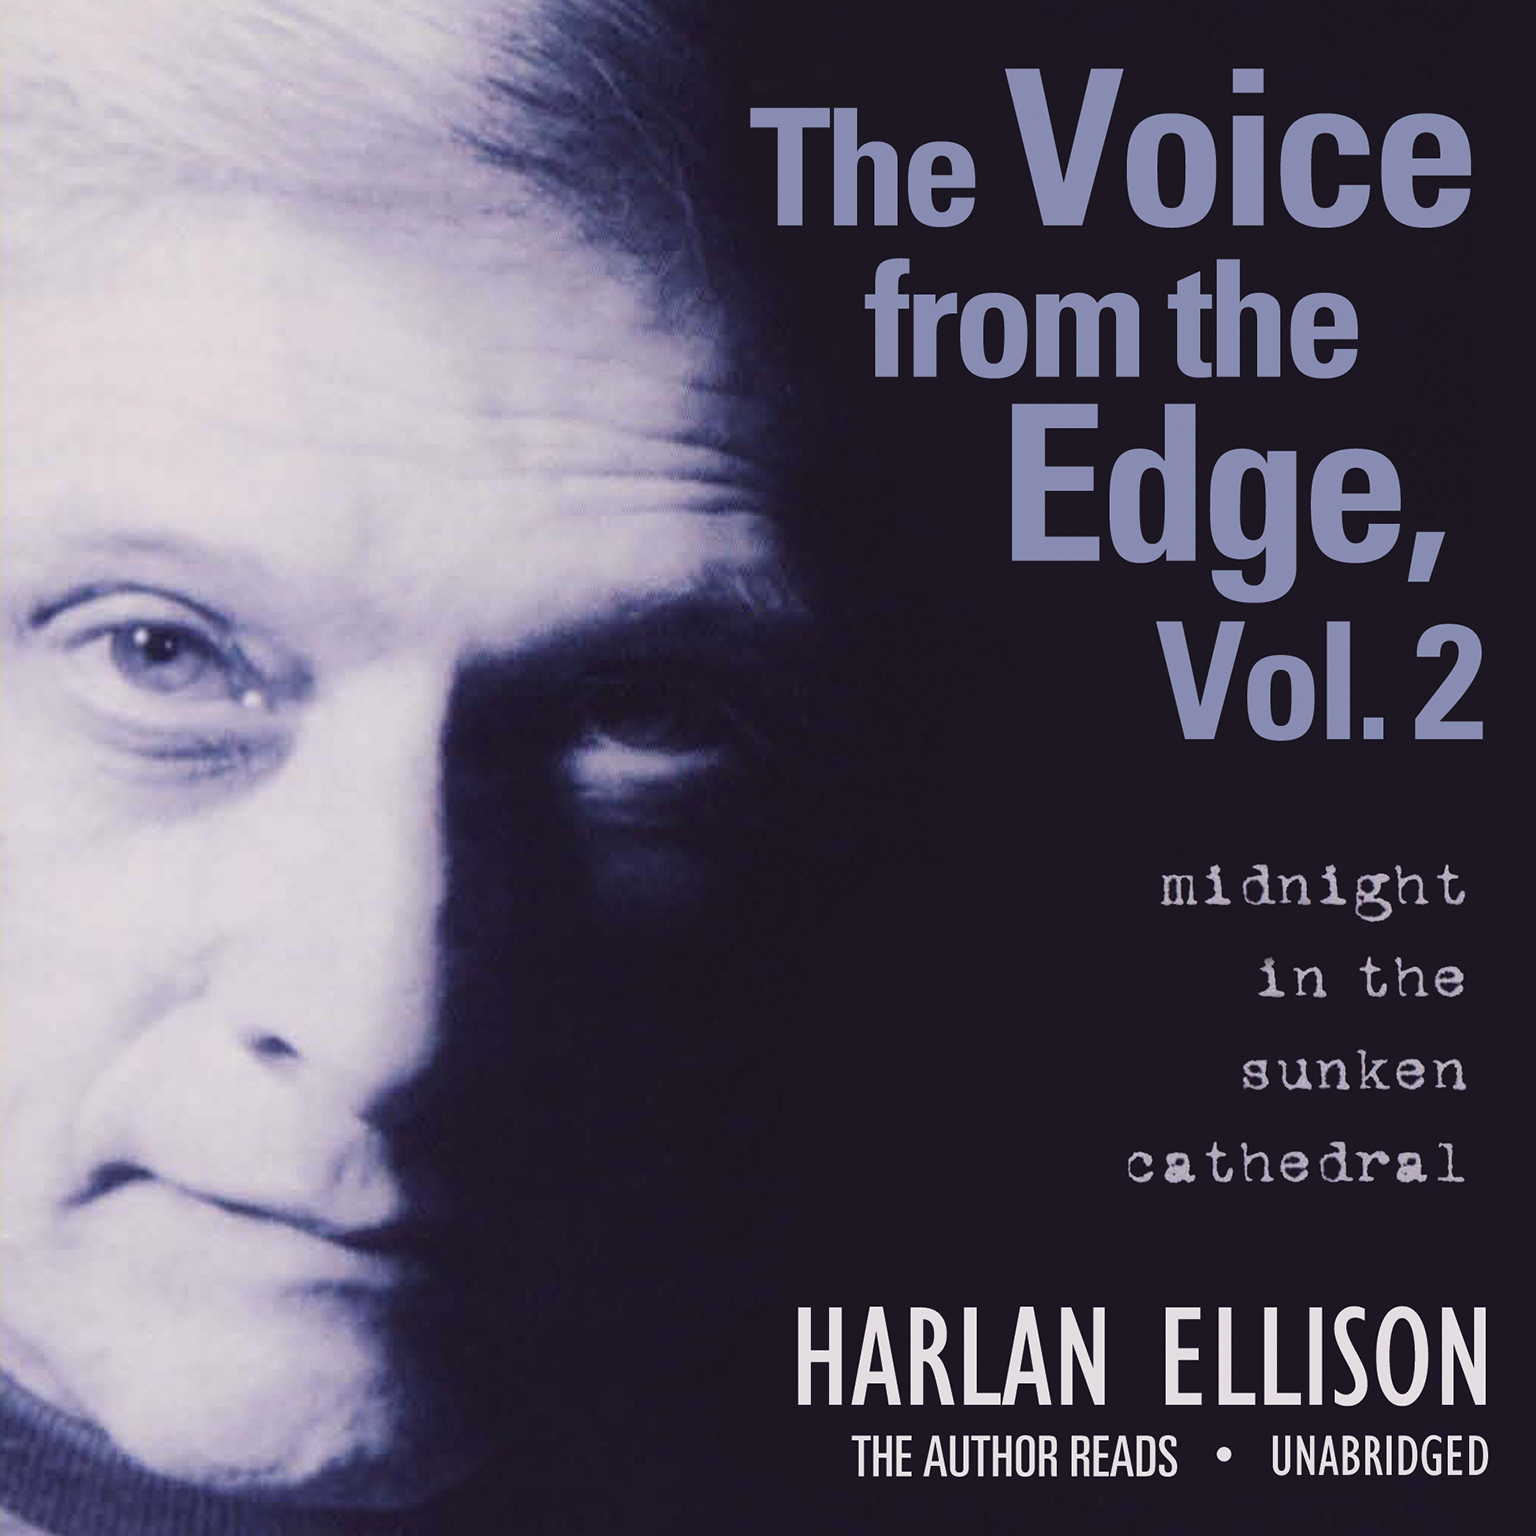 Printable The Voice from the Edge, Vol. 2: Midnight in the Sunken Cathedral Audiobook Cover Art